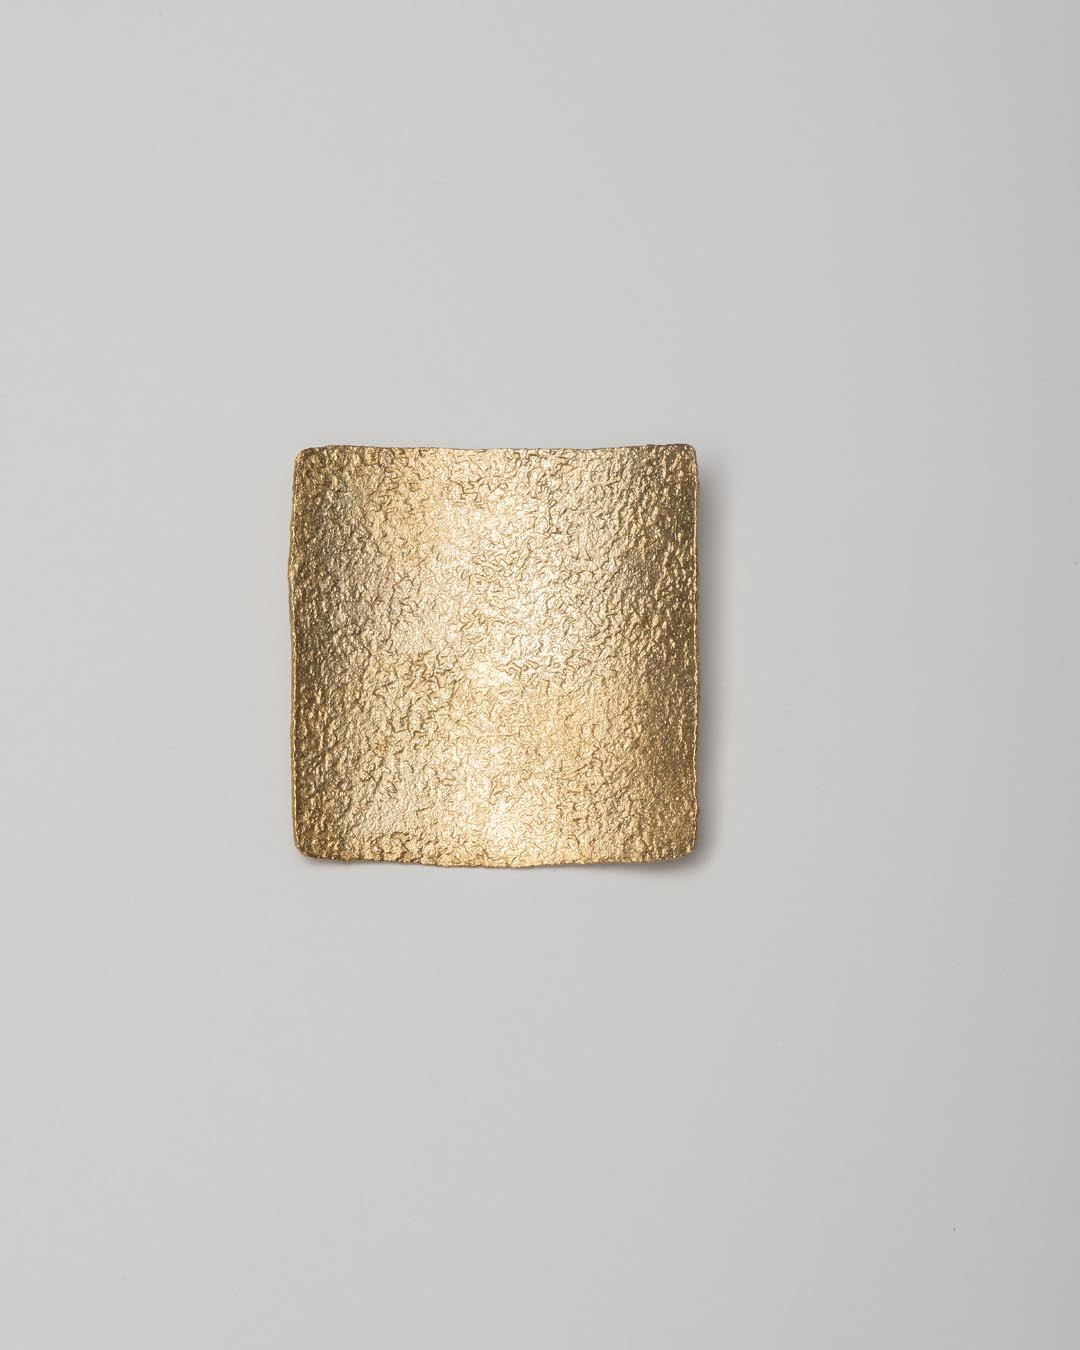 Yasuki Hiramatsu, untitled, brooch; gold-plated silver, 46 x 48 x 6 mm, €750